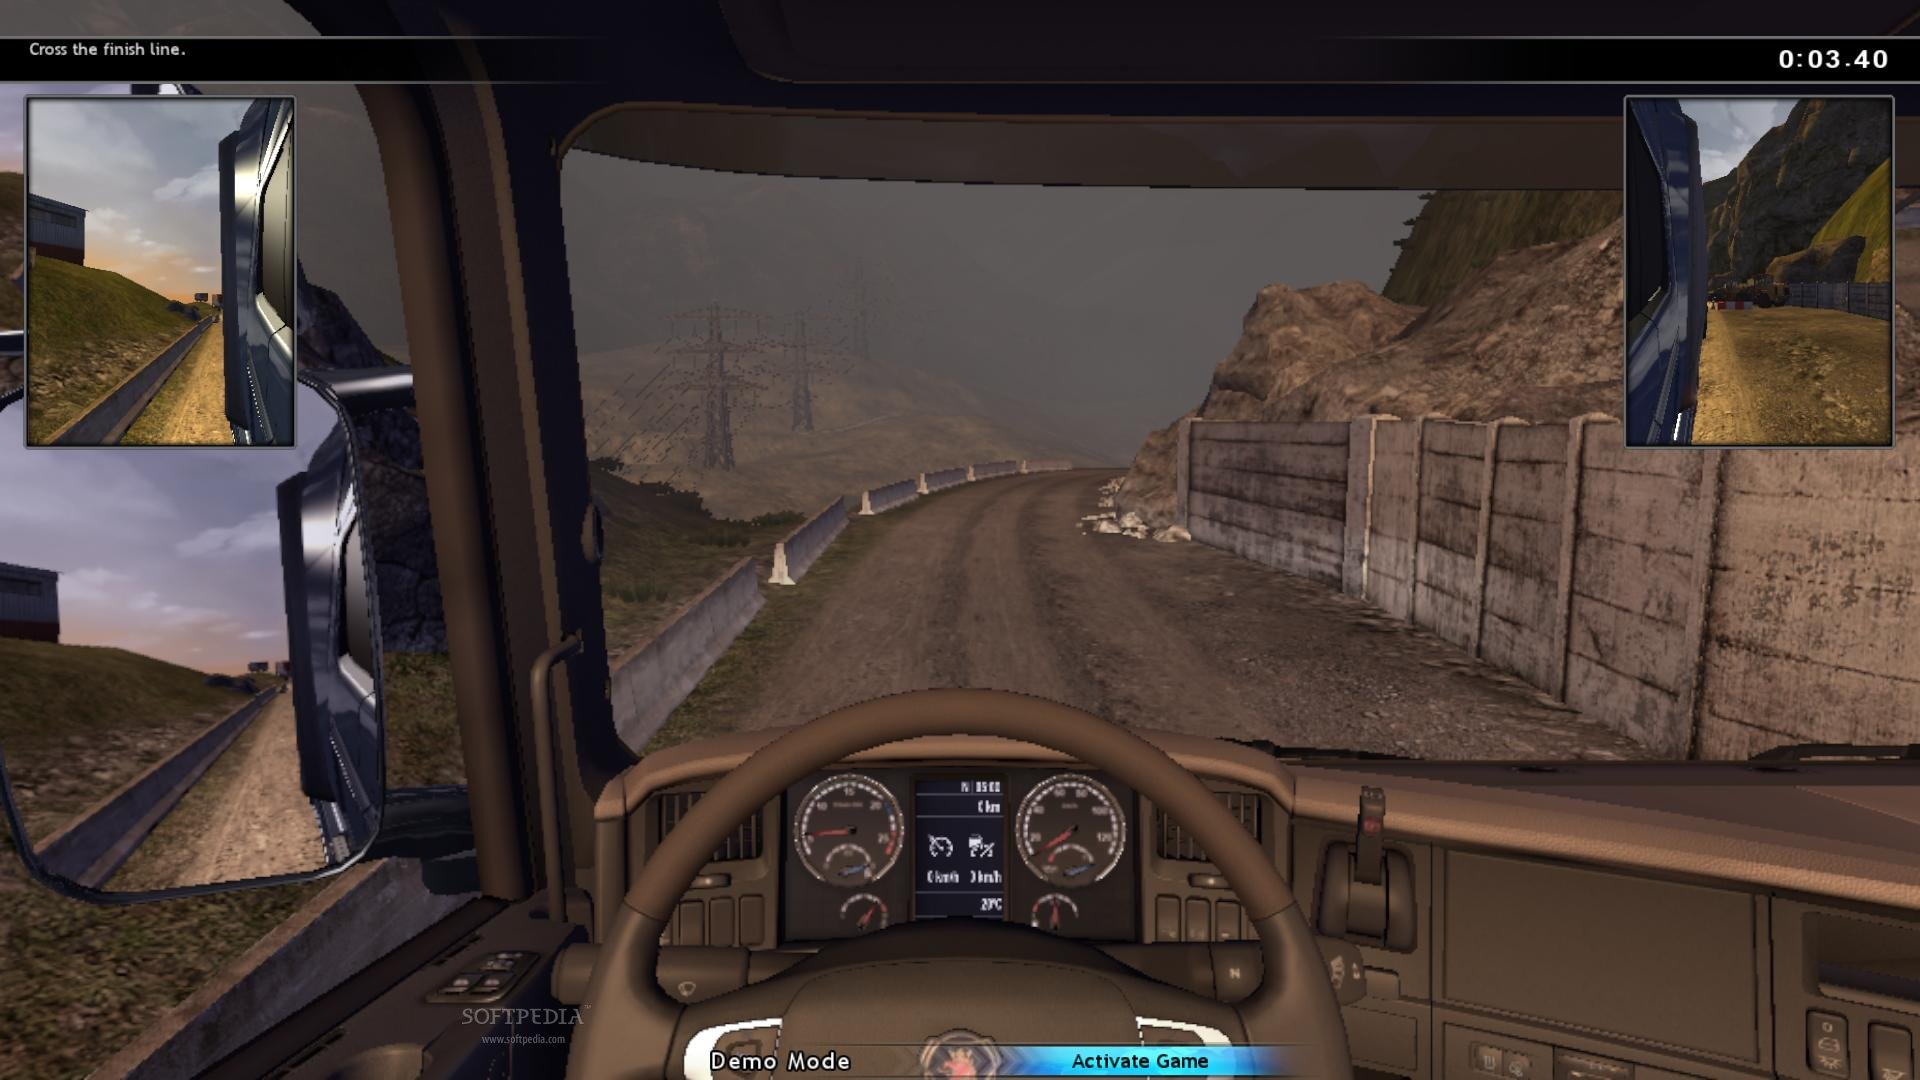 Scania-Truck-Driving-Simulator-Game-Archive-Extractor_1.jpg